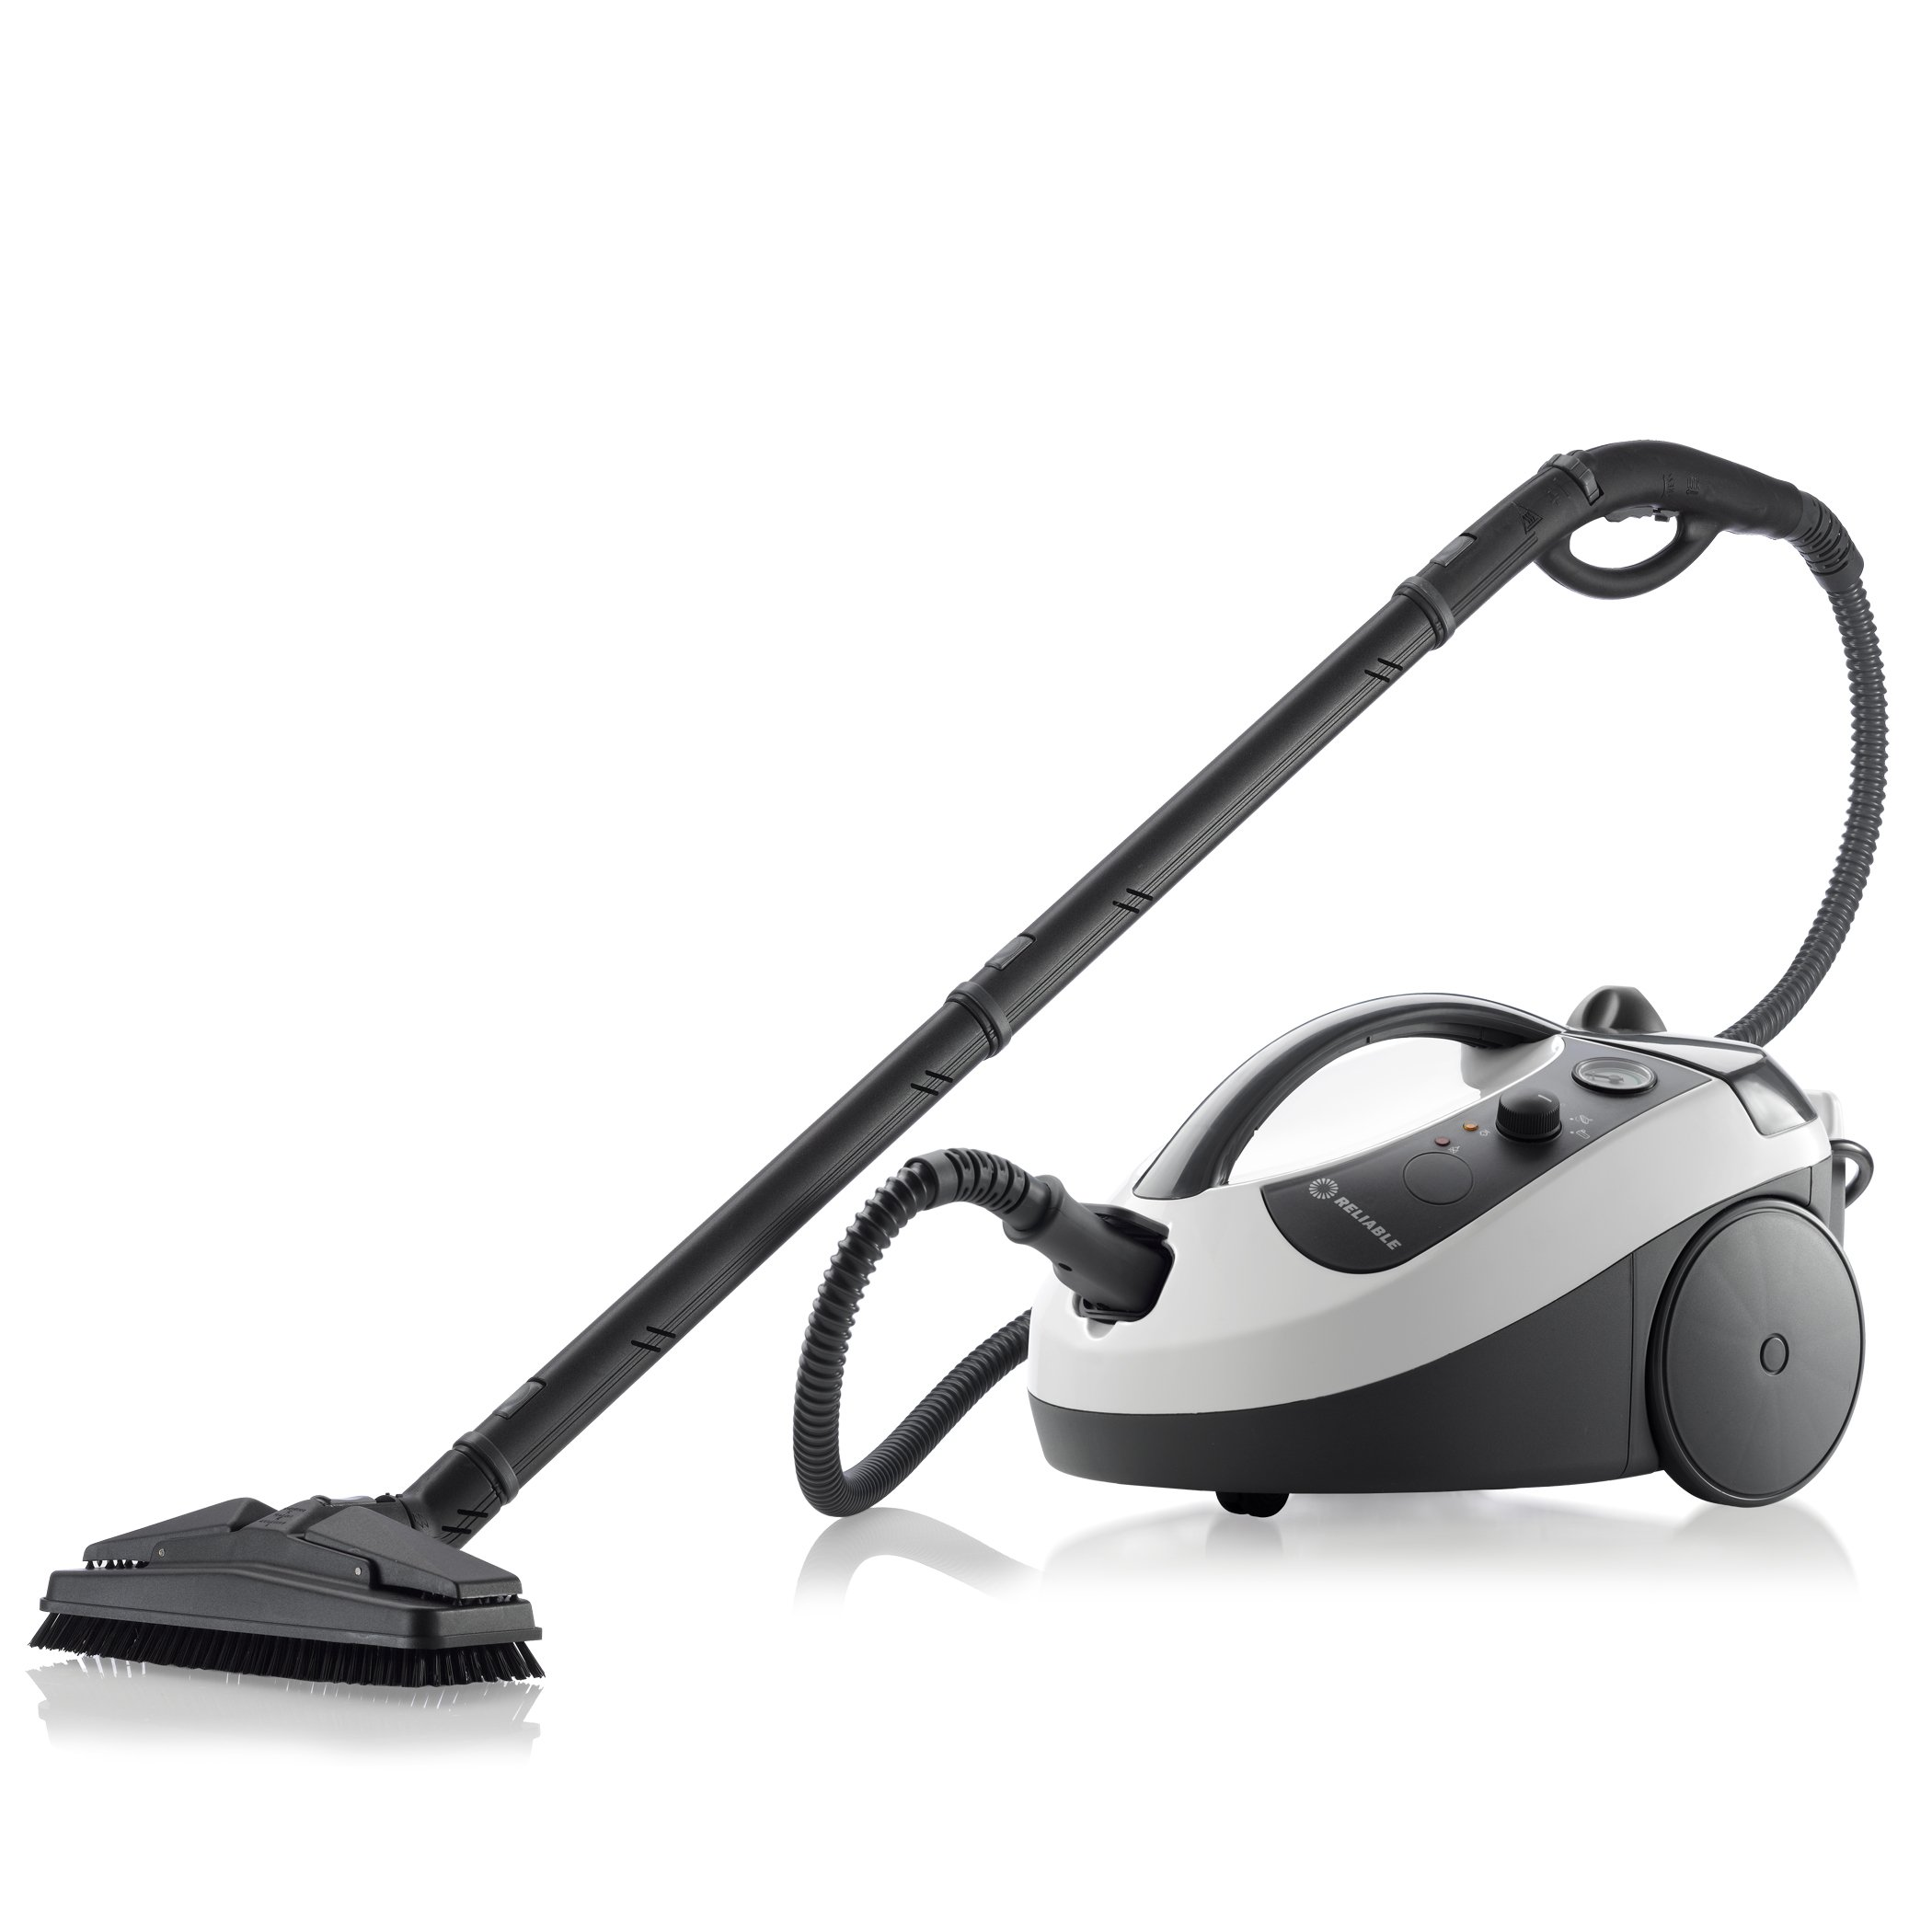 Reliable EnviroMate E3 Steam Cleaner, Made in Europe